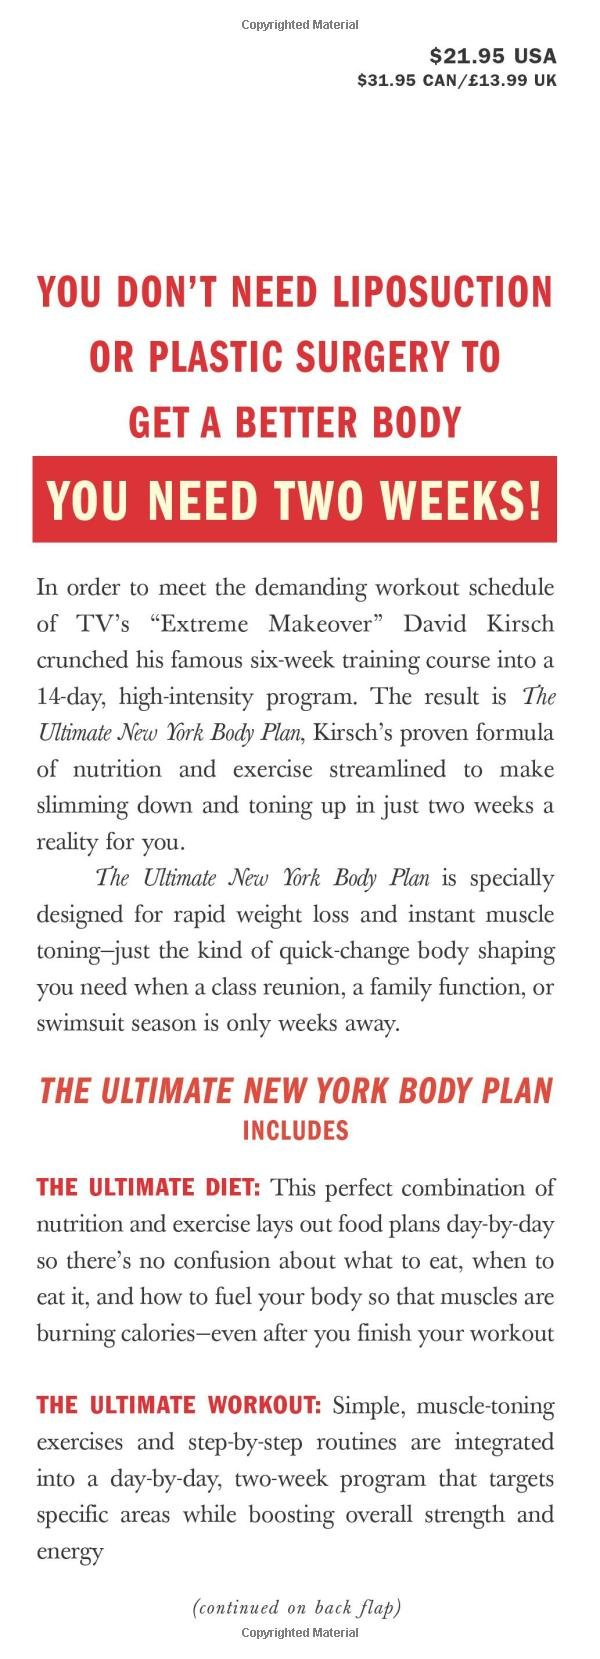 Ultimate York Body Plan transformation product image